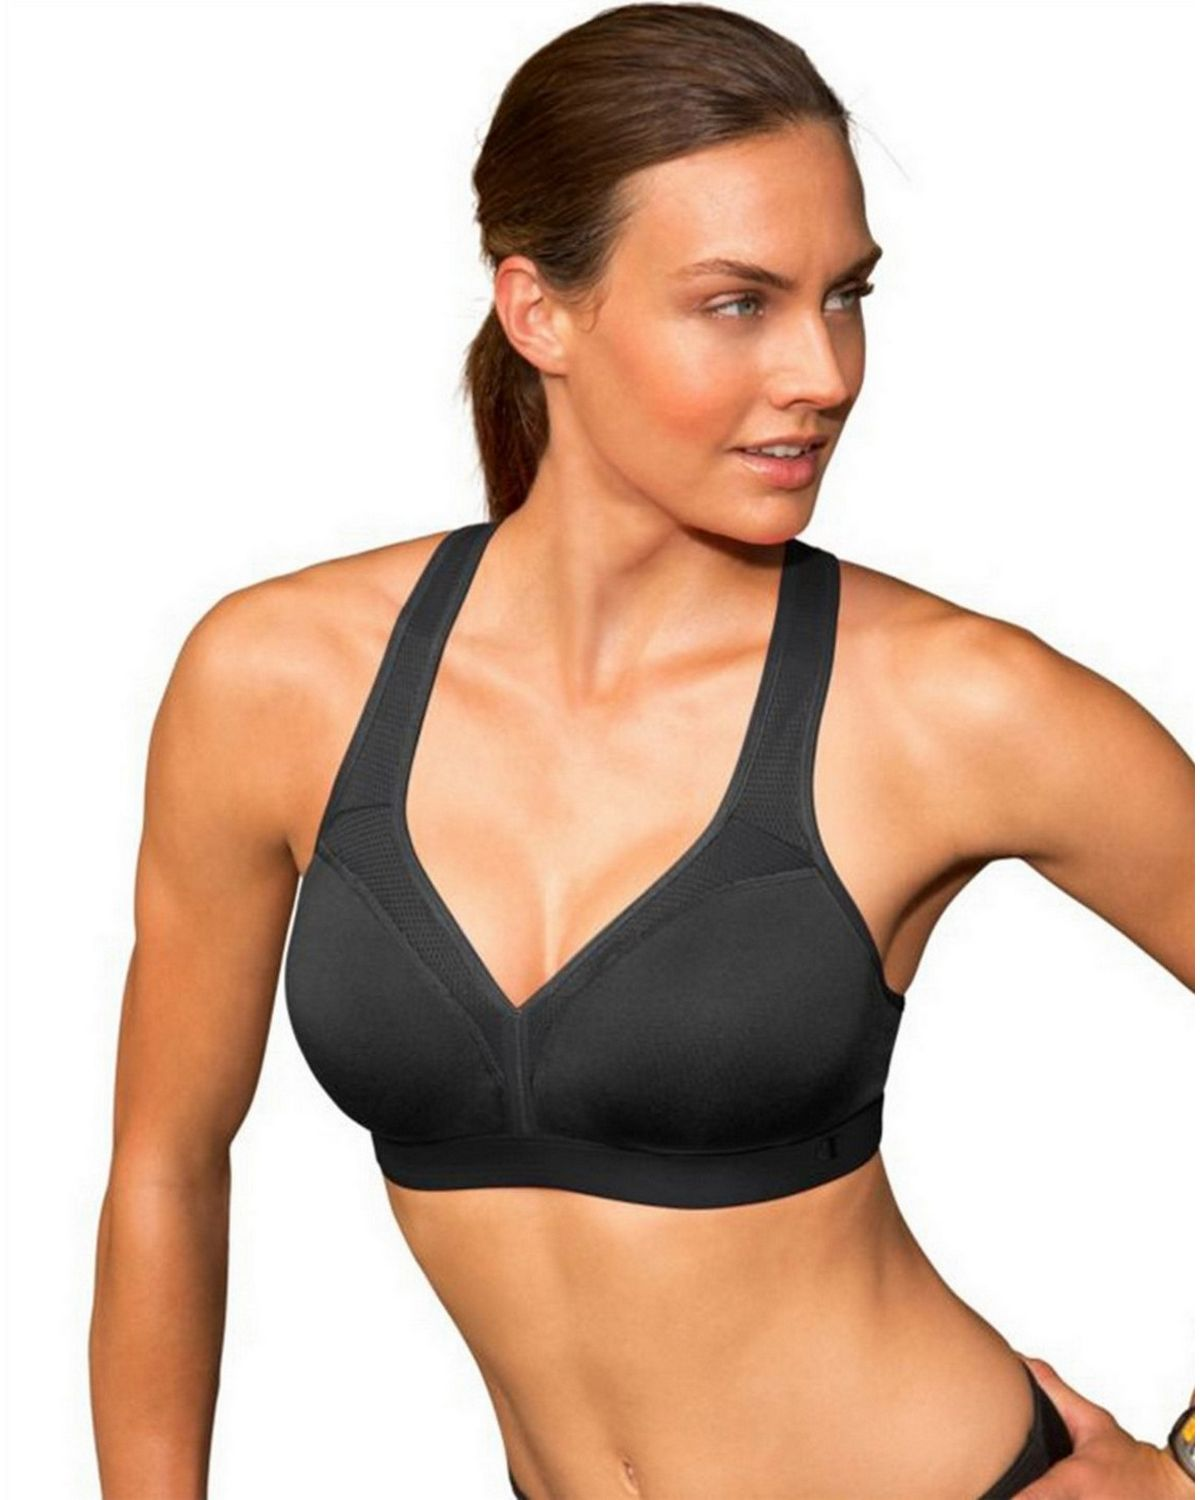 Champion B9373 Show-Off Bra - Black - XS B9373